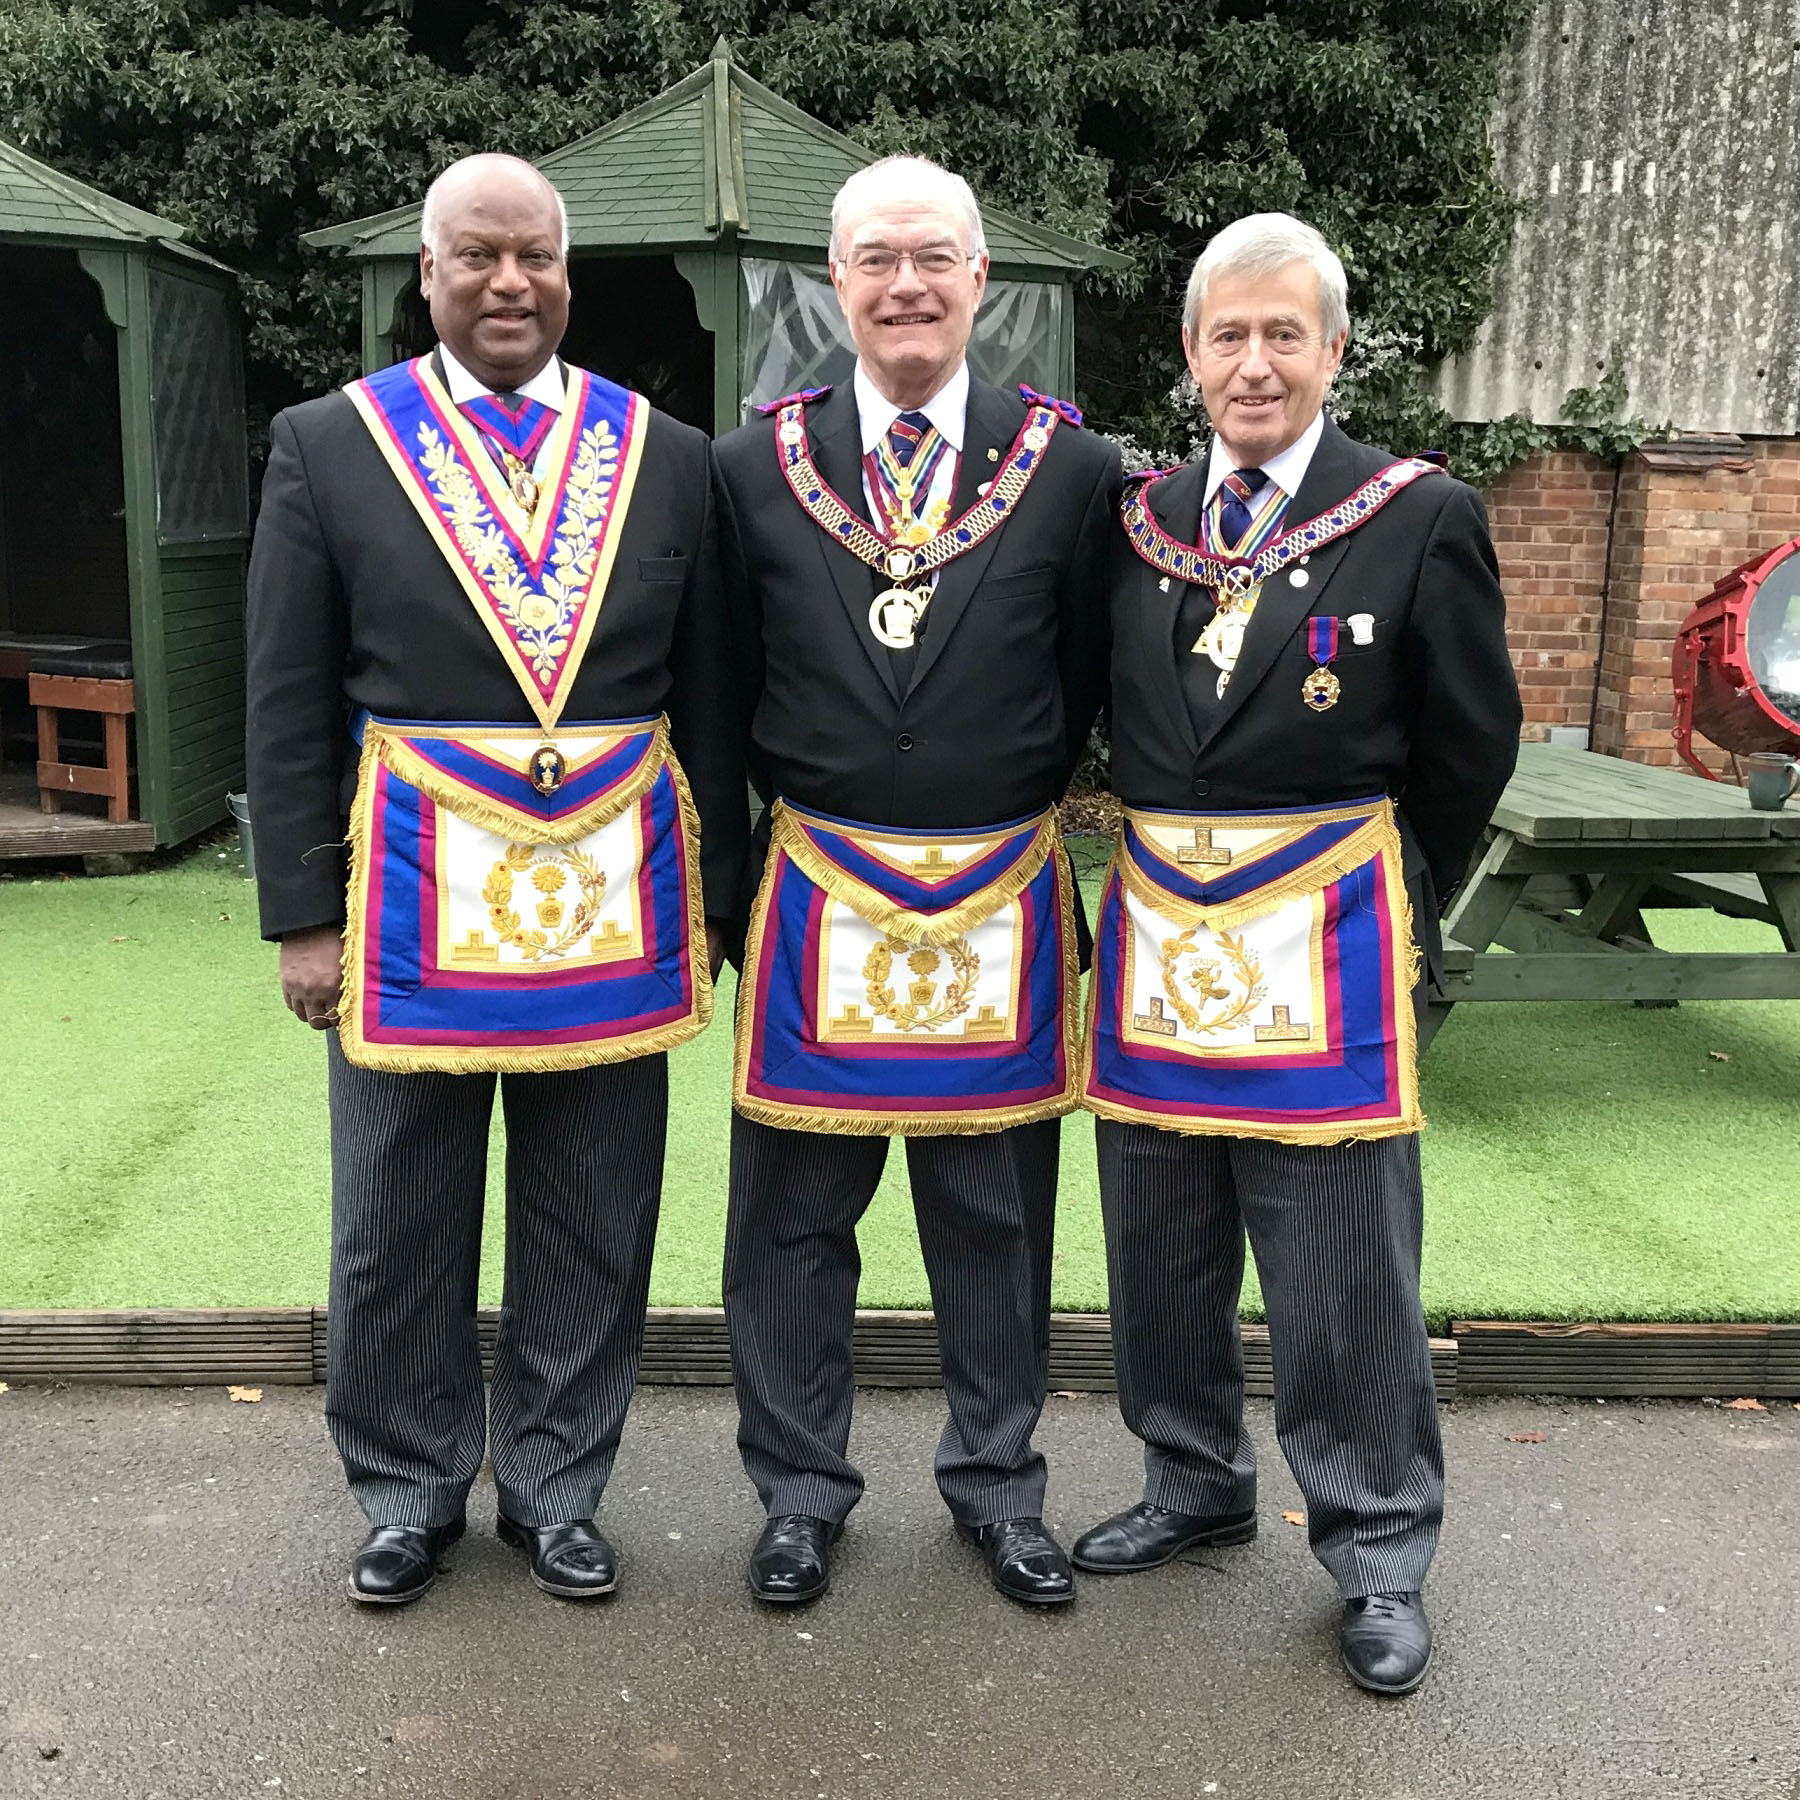 Visit to the Provincial Mark Grand Lodge Of Warwickshire